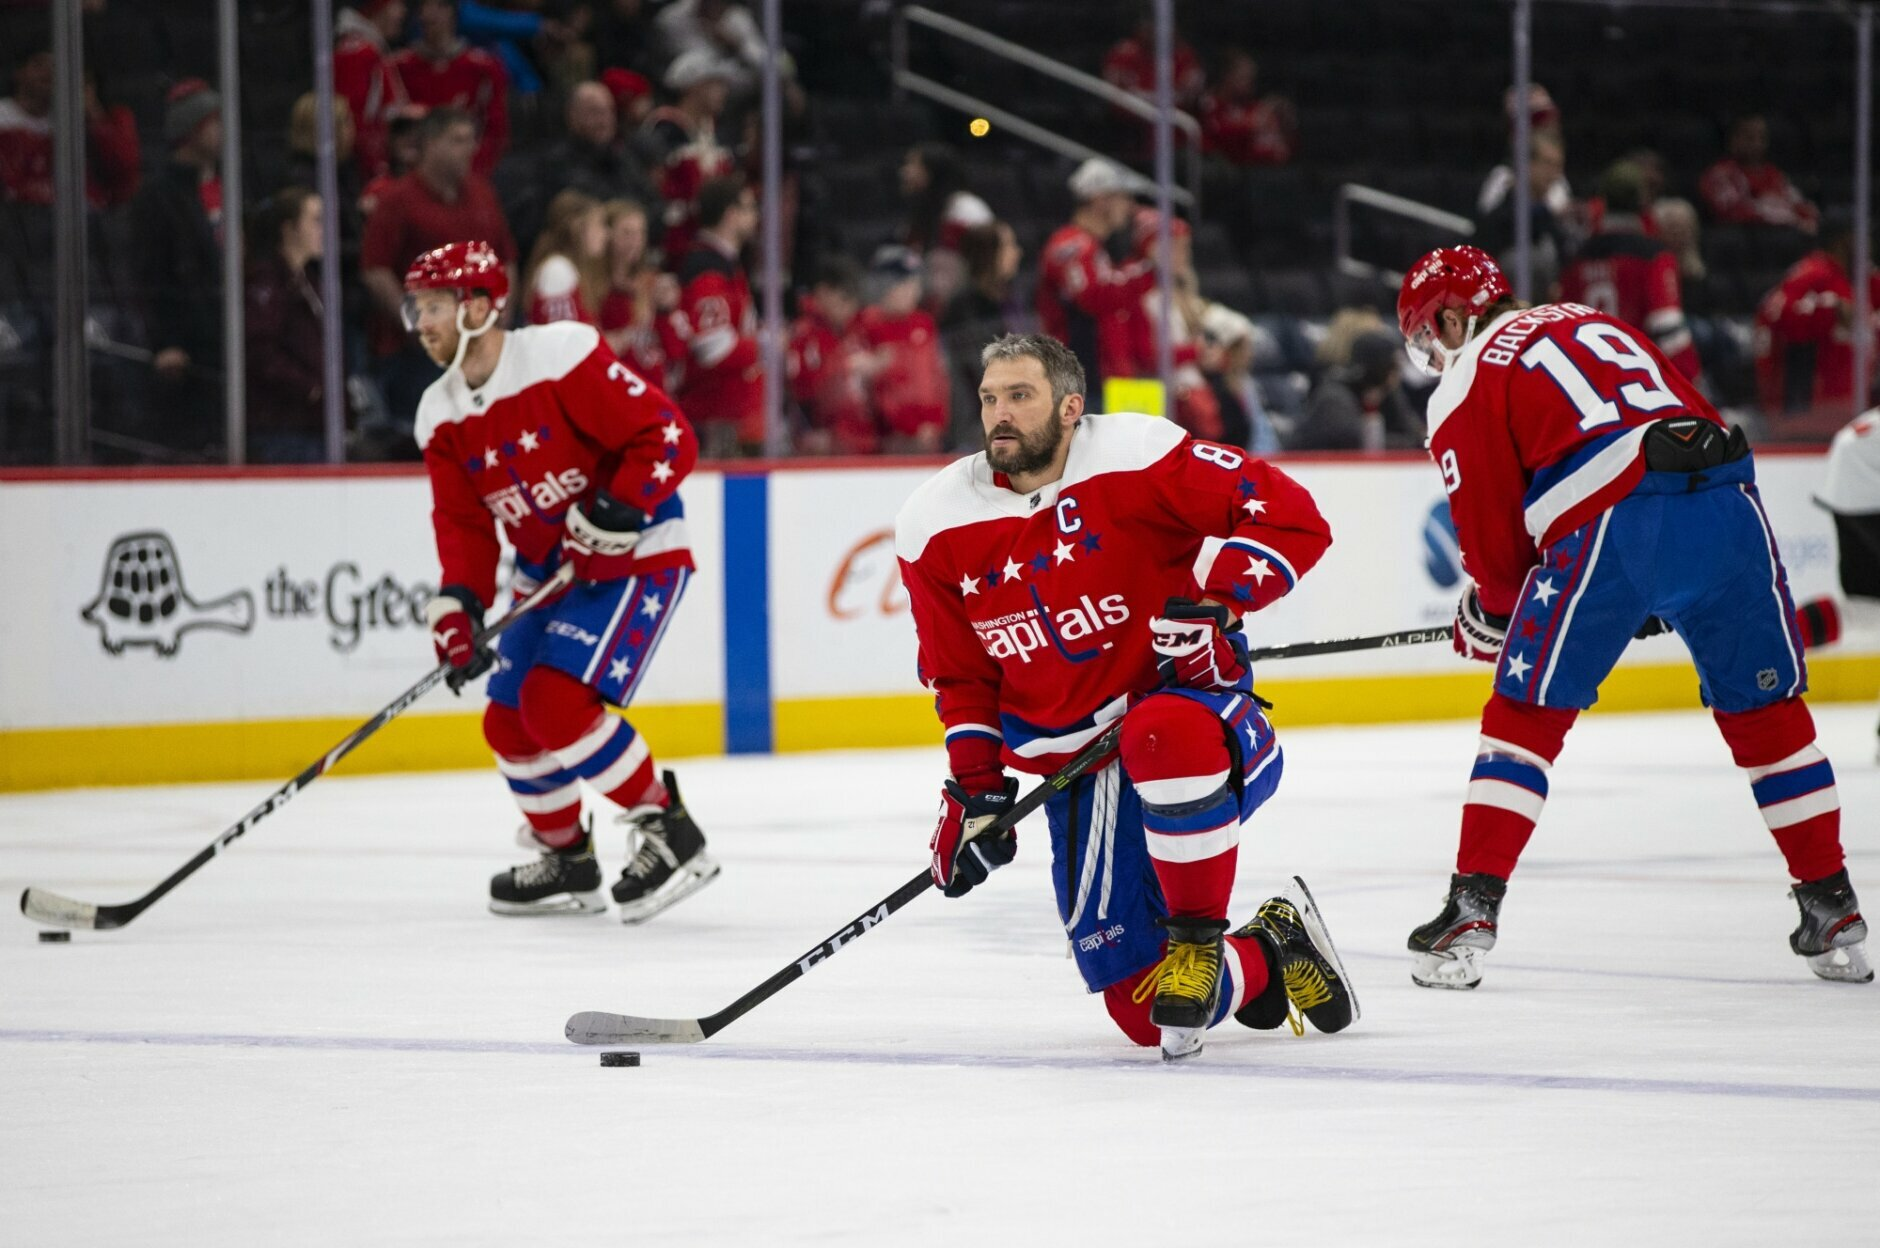 Washington Capitals left wing Alex Ovechkin (8), kneels on the ice during warmups before an NHL hockey game against the New Jersey Devils, Thursday, Jan. 16, 2020, in Washington. (AP Photo/Al Drago)